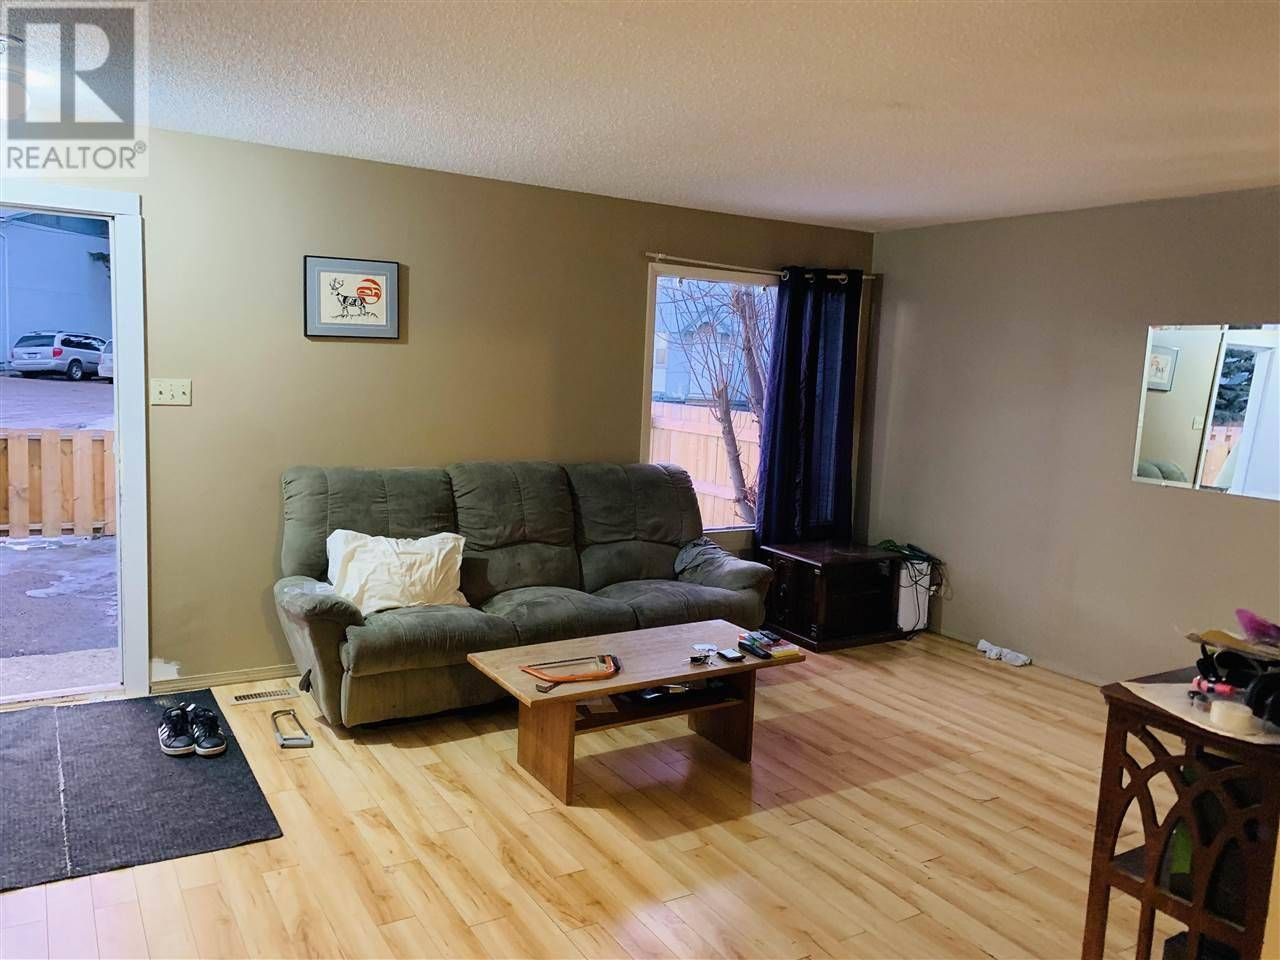 Townhouse for sale at 2131 Upland St Unit A48 Prince George British Columbia - MLS: R2440273